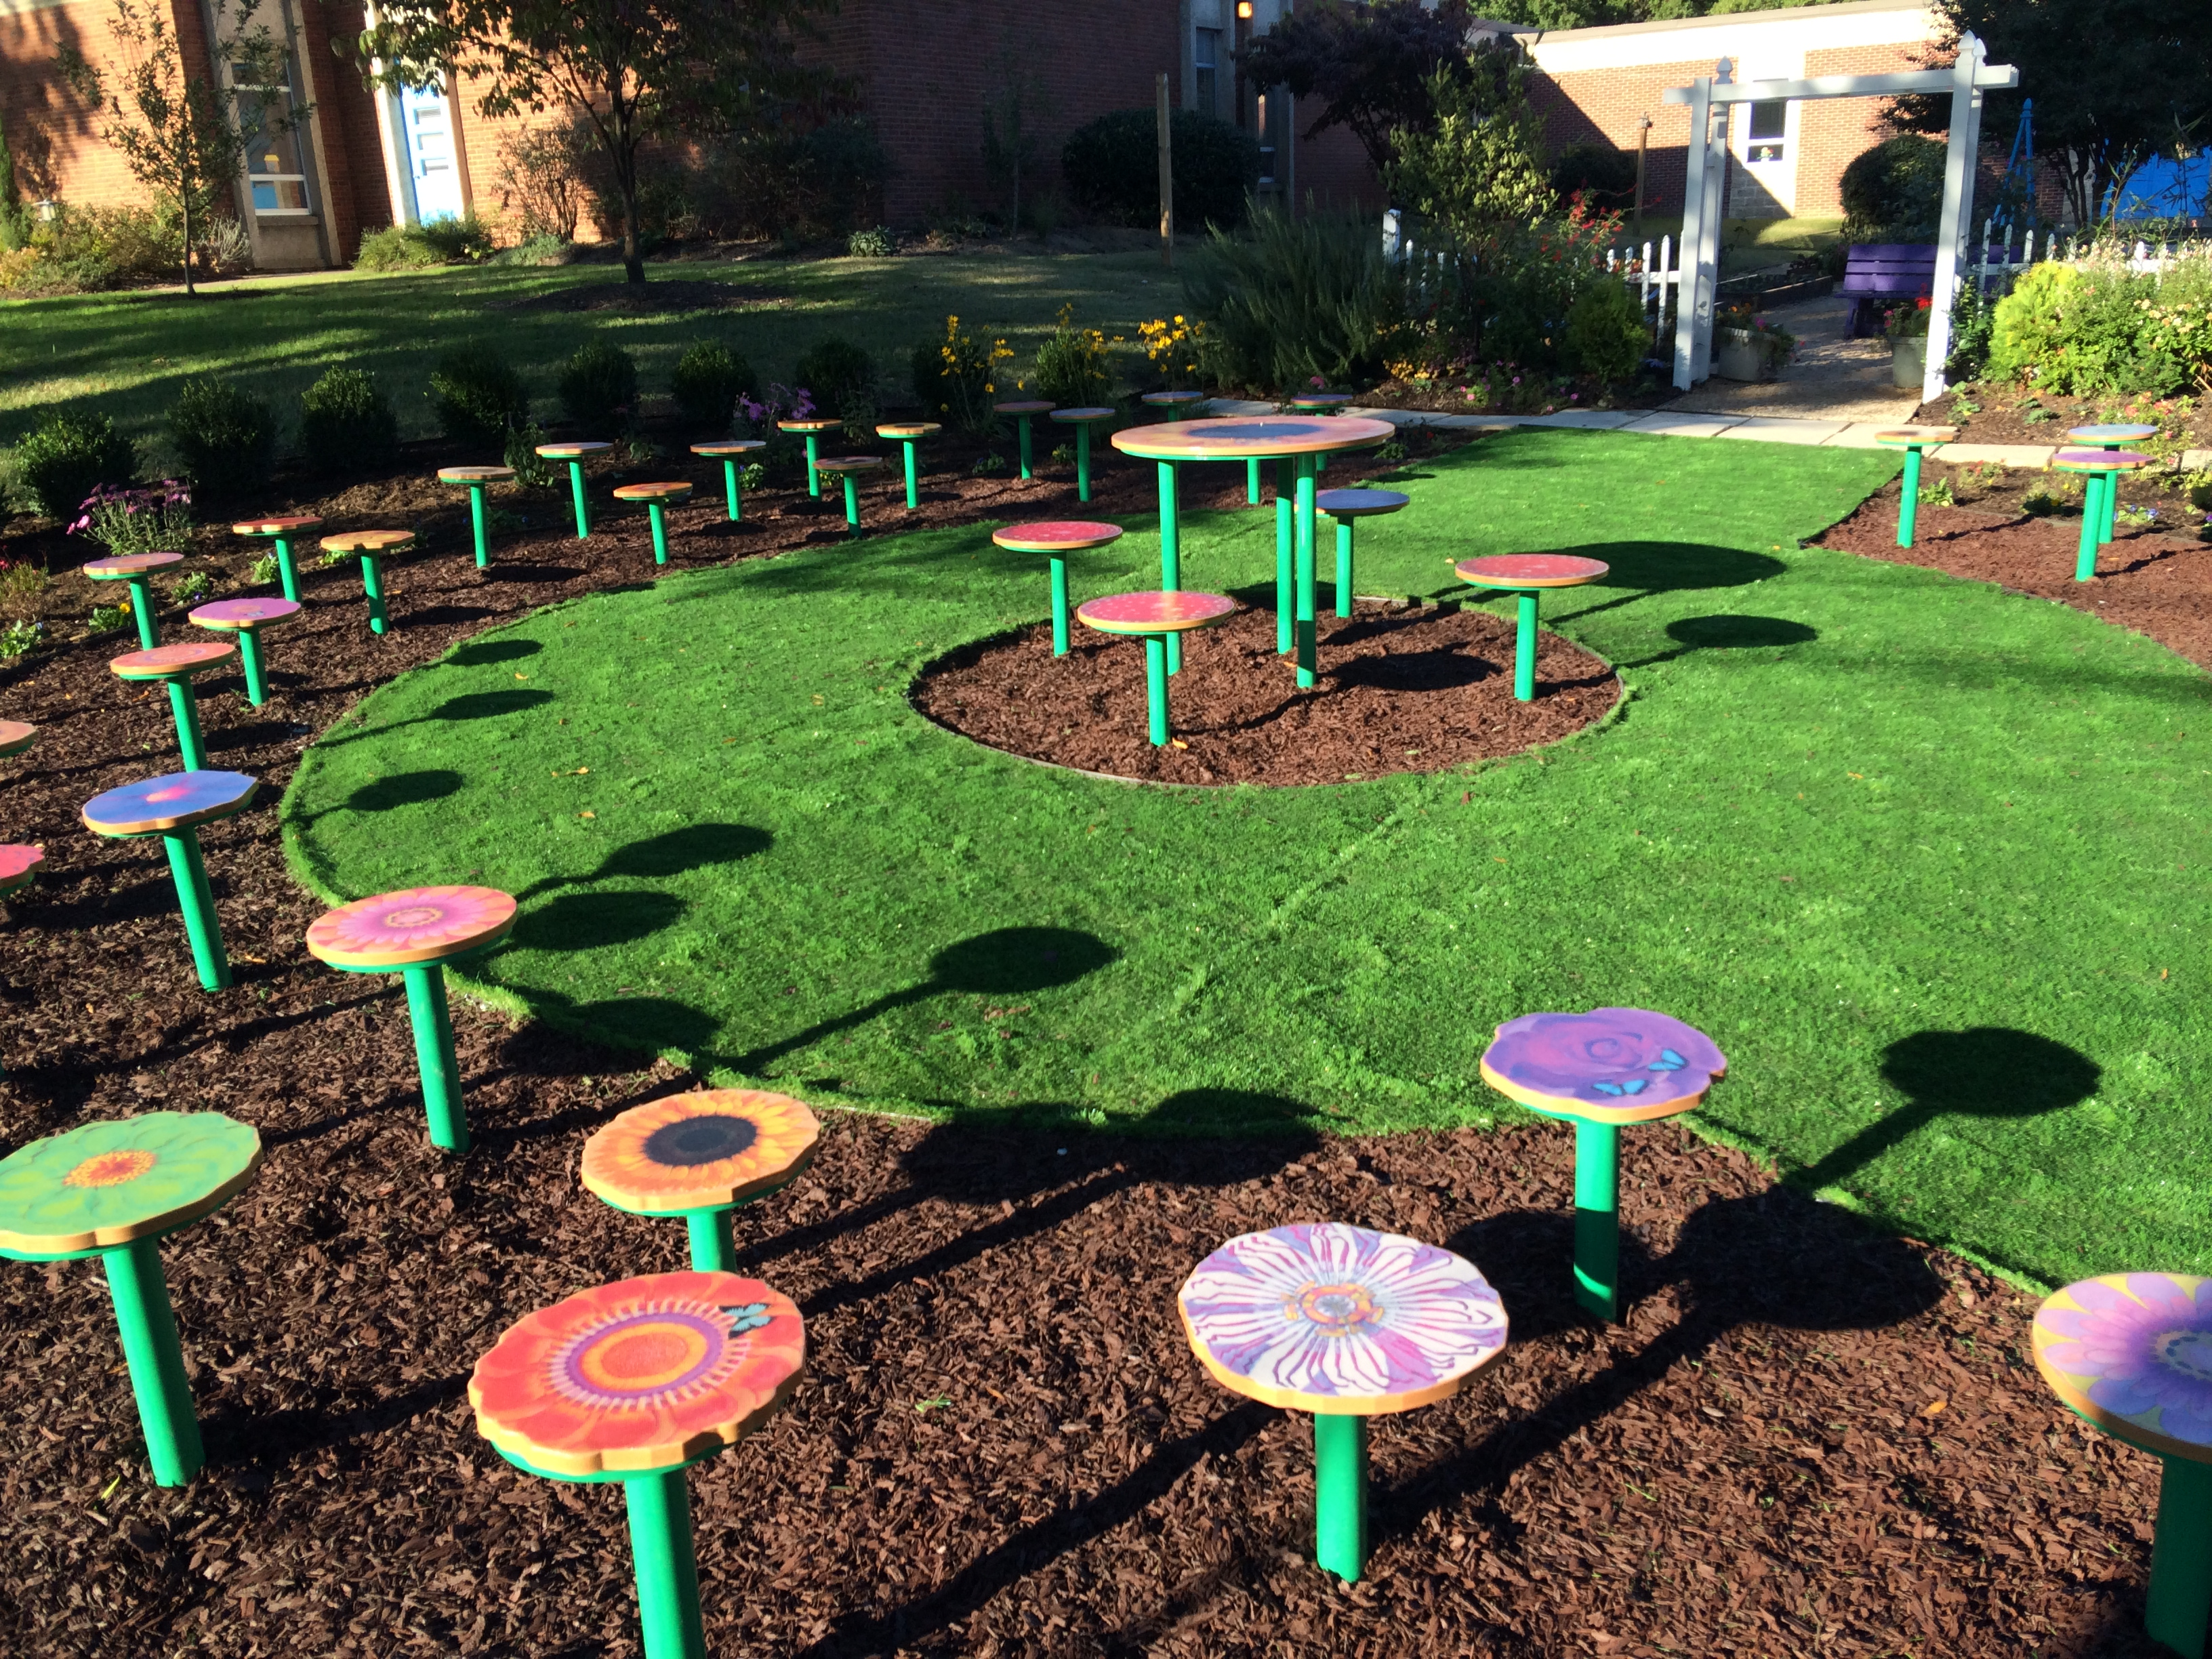 Chimborazo Elementary School's Teaching Garden